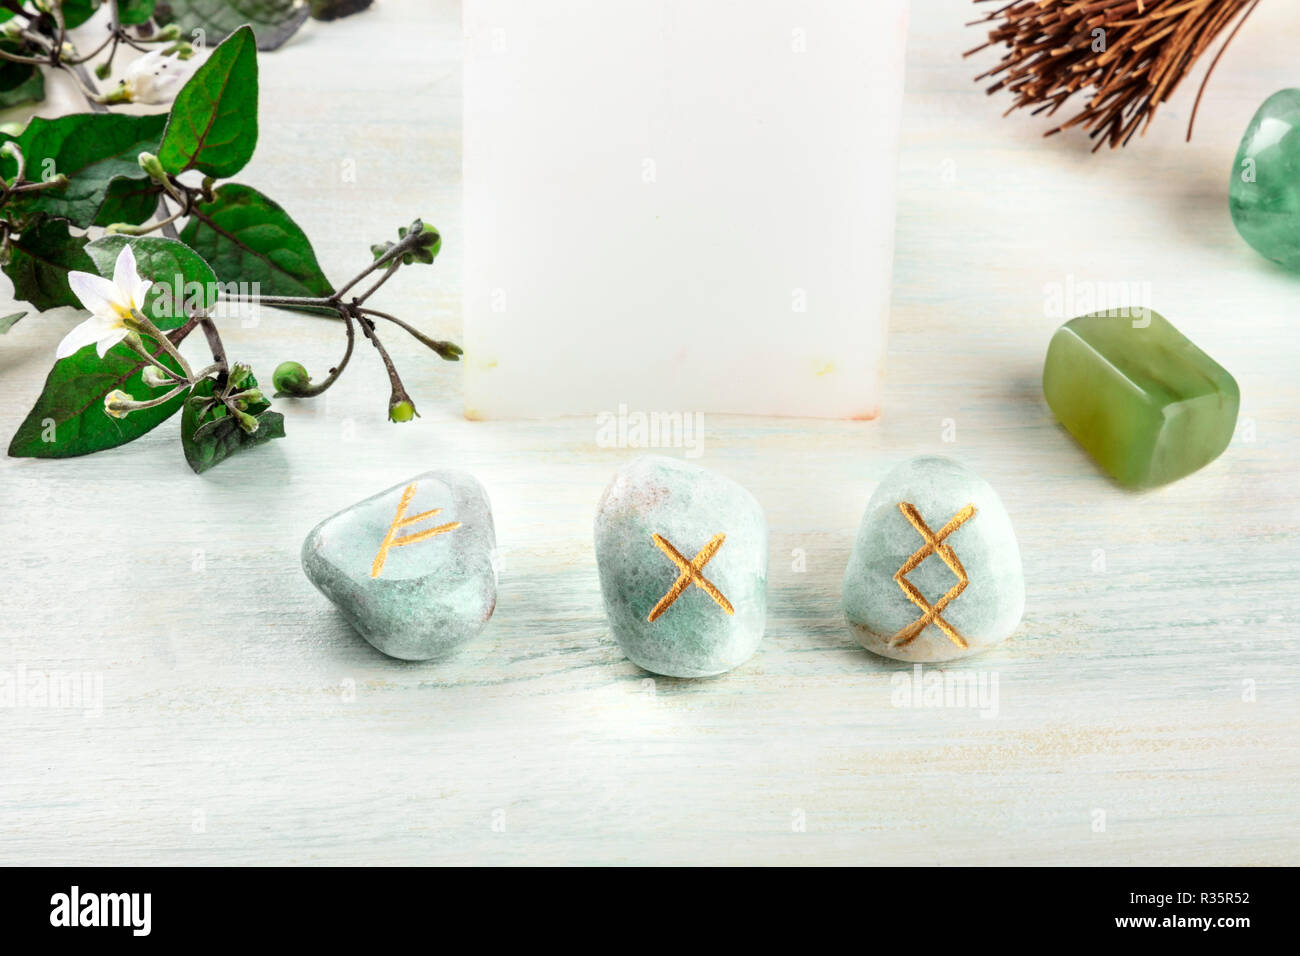 Norse runes, stones with symbols used in Wicca and other magic and for divination, with a candle and crystals with a place for text - Stock Image